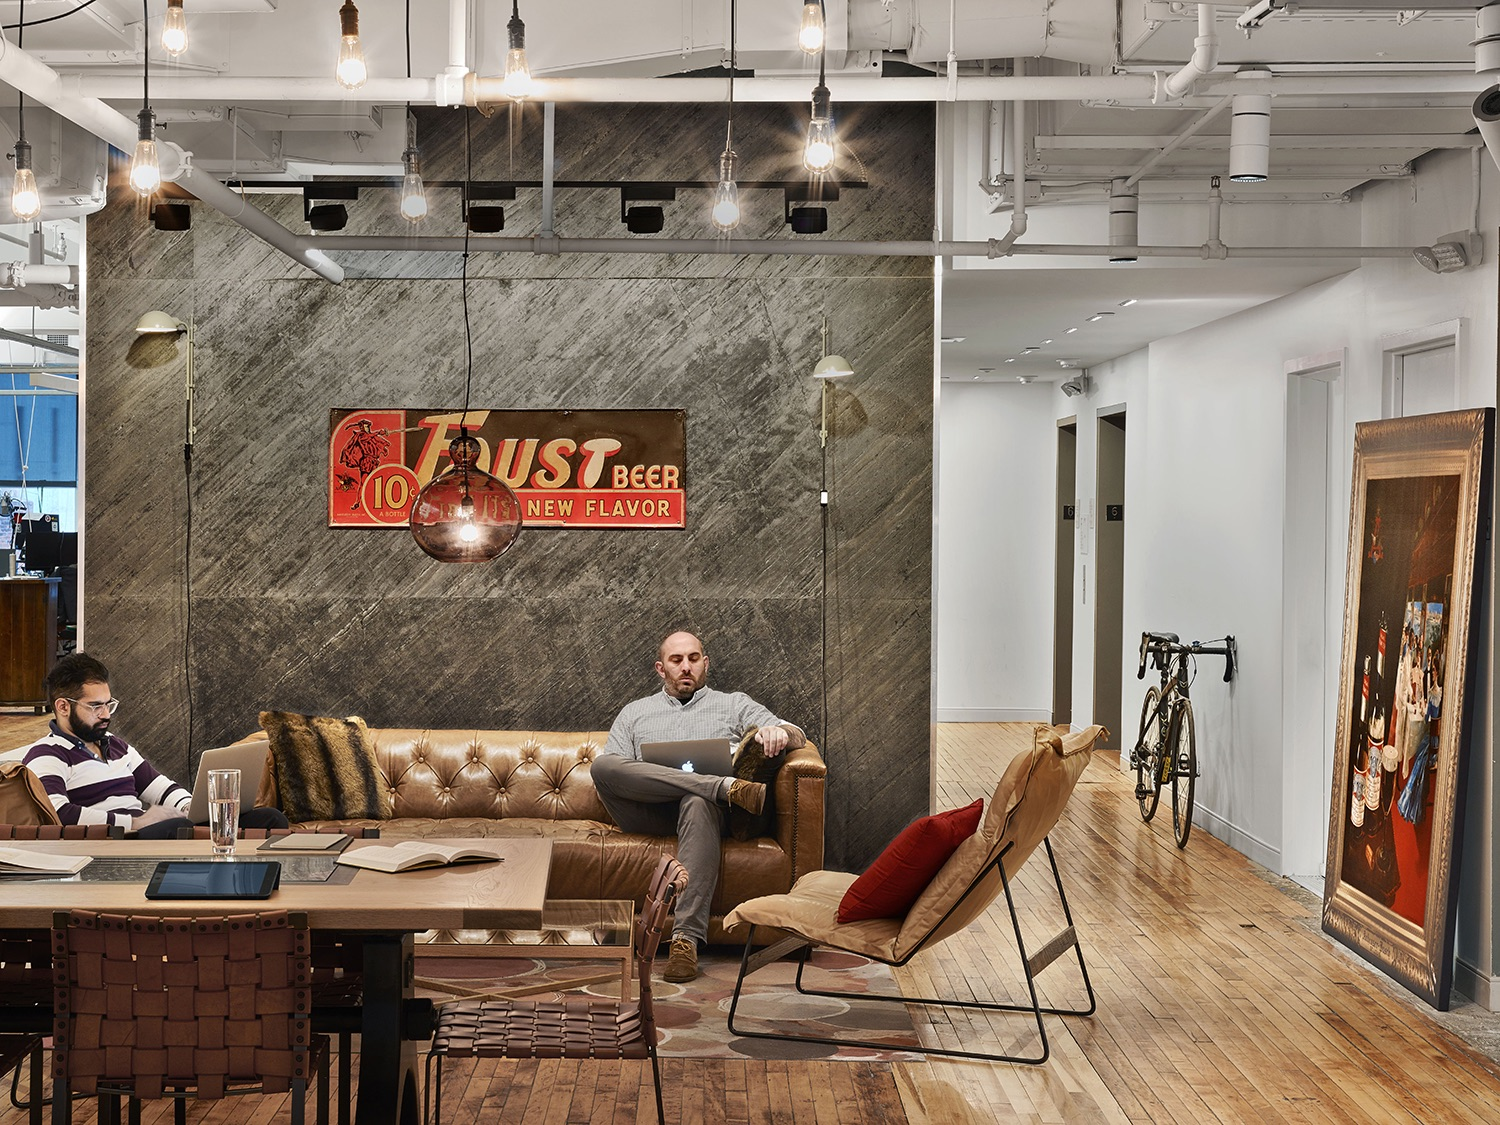 anheuser-busch-nyc-office-6